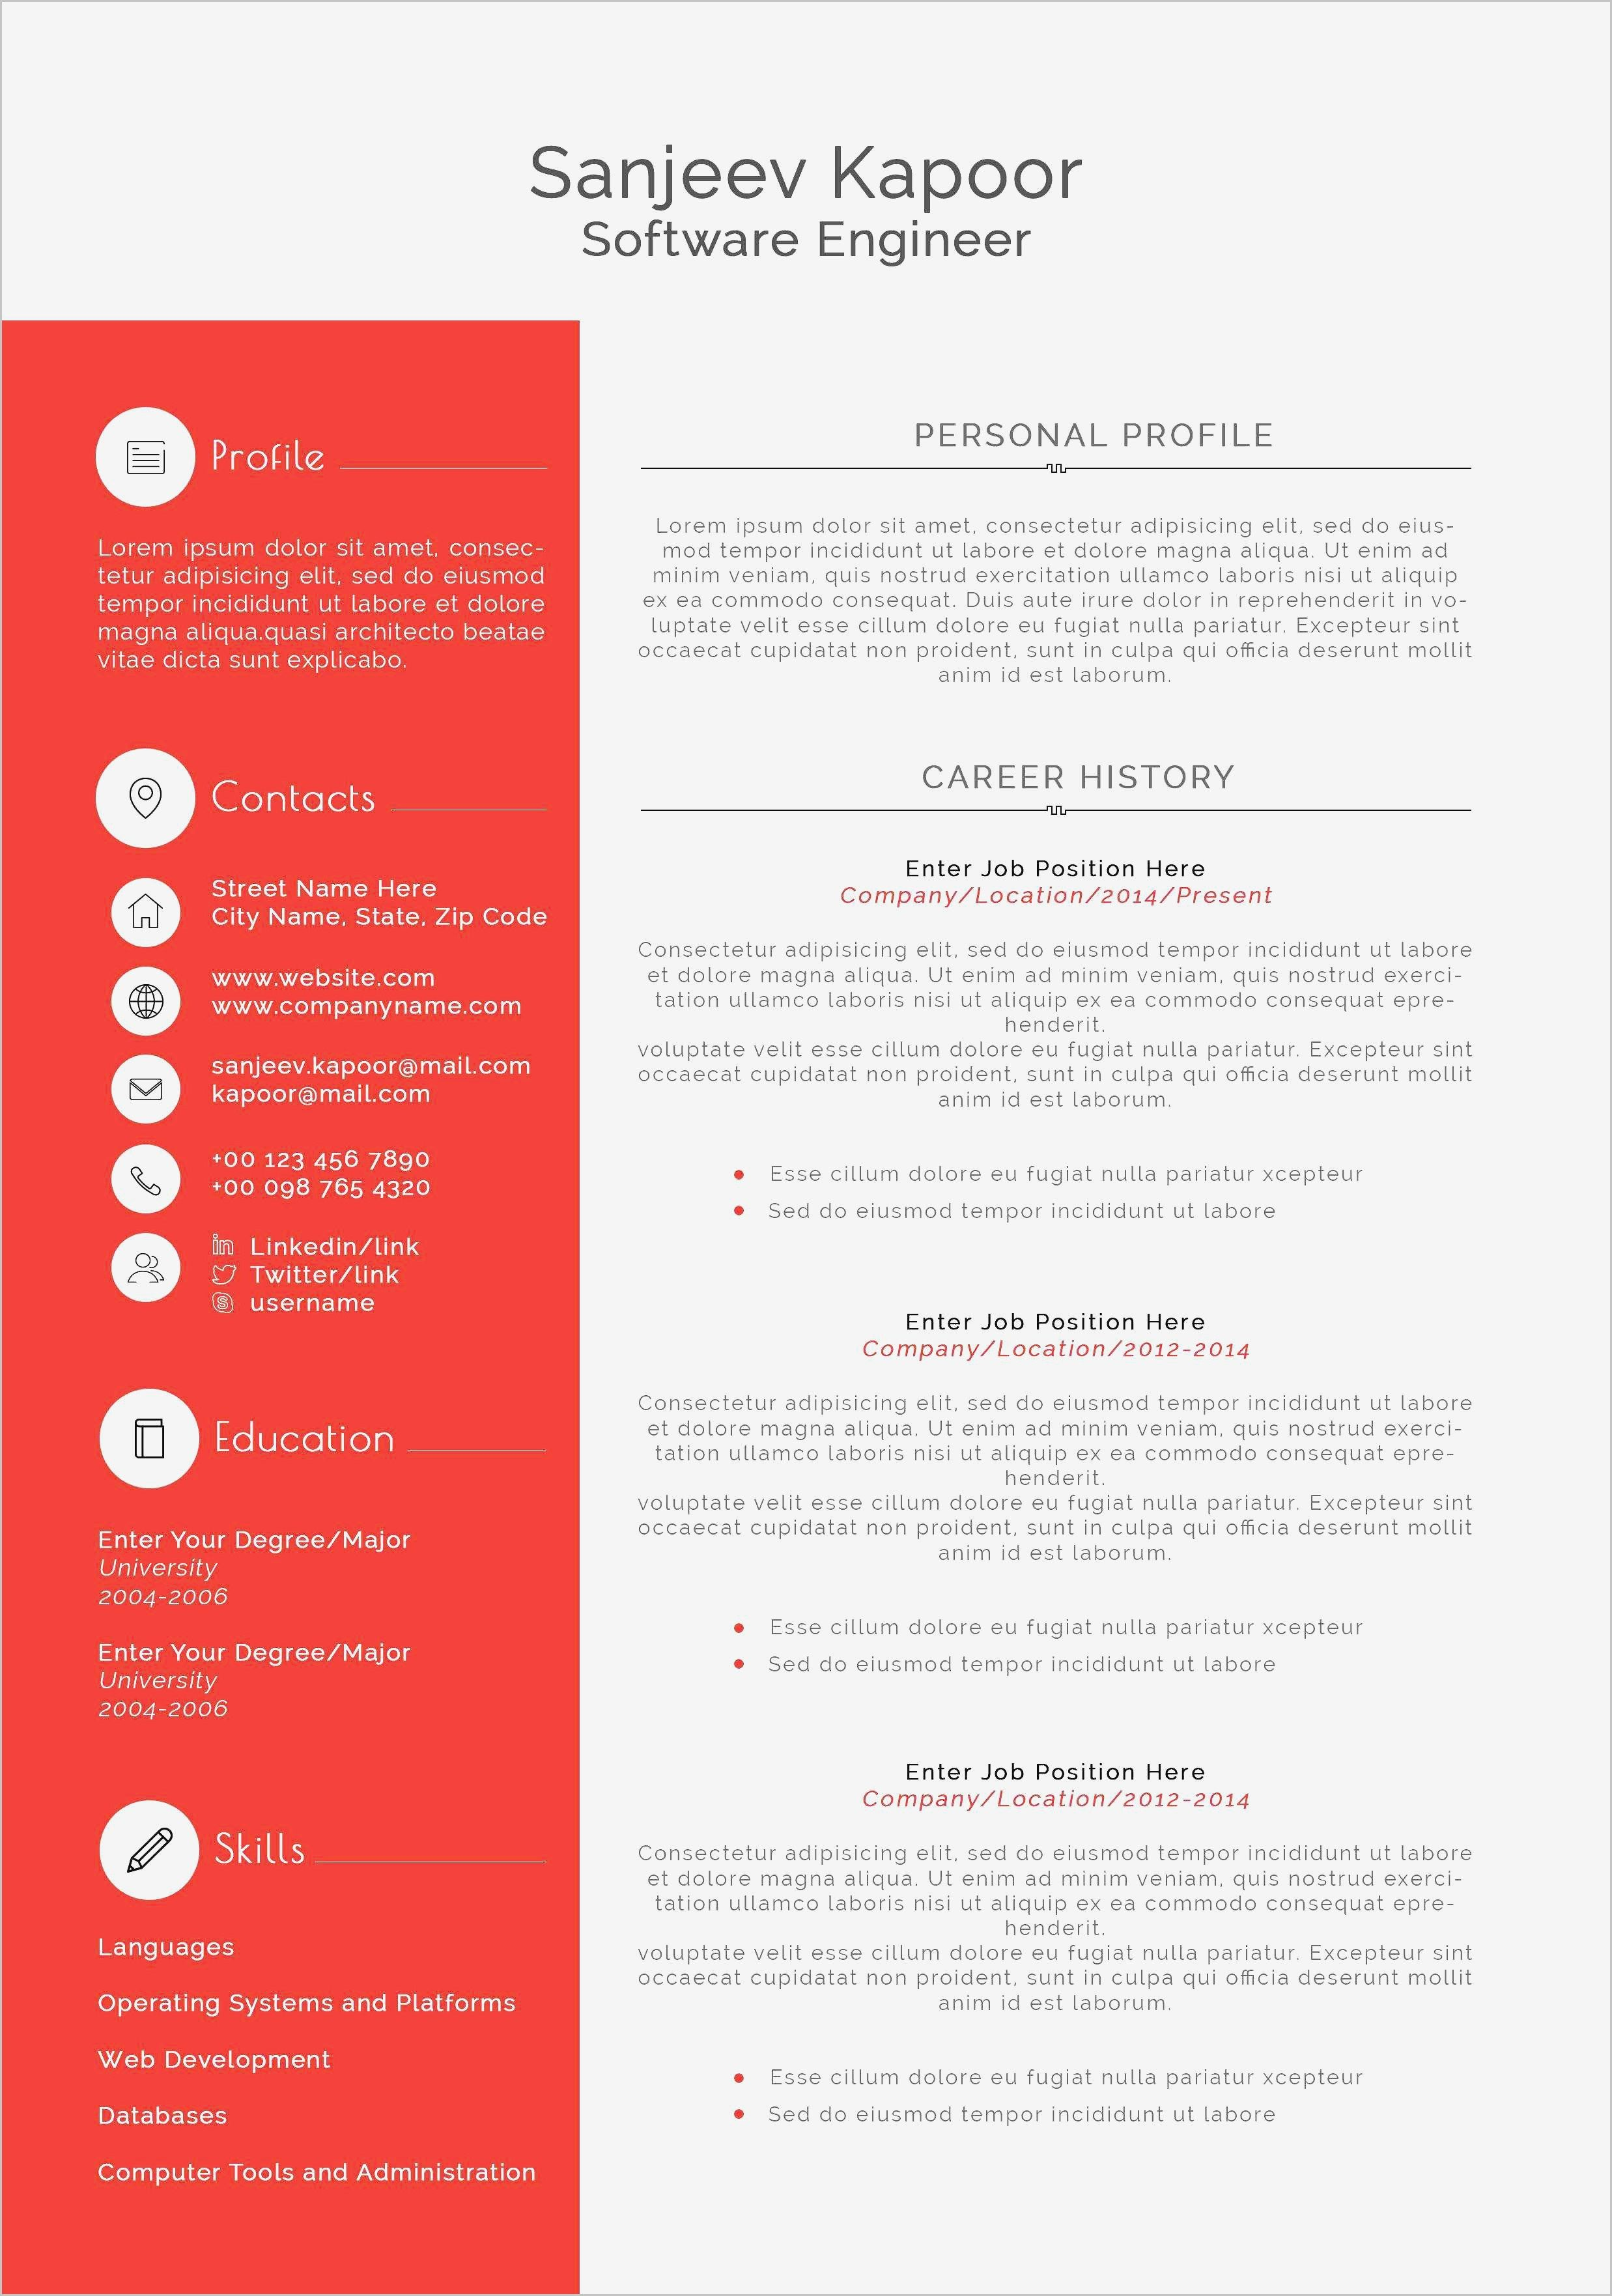 Resume Templates Wordpad in 2020 (With images) Resume